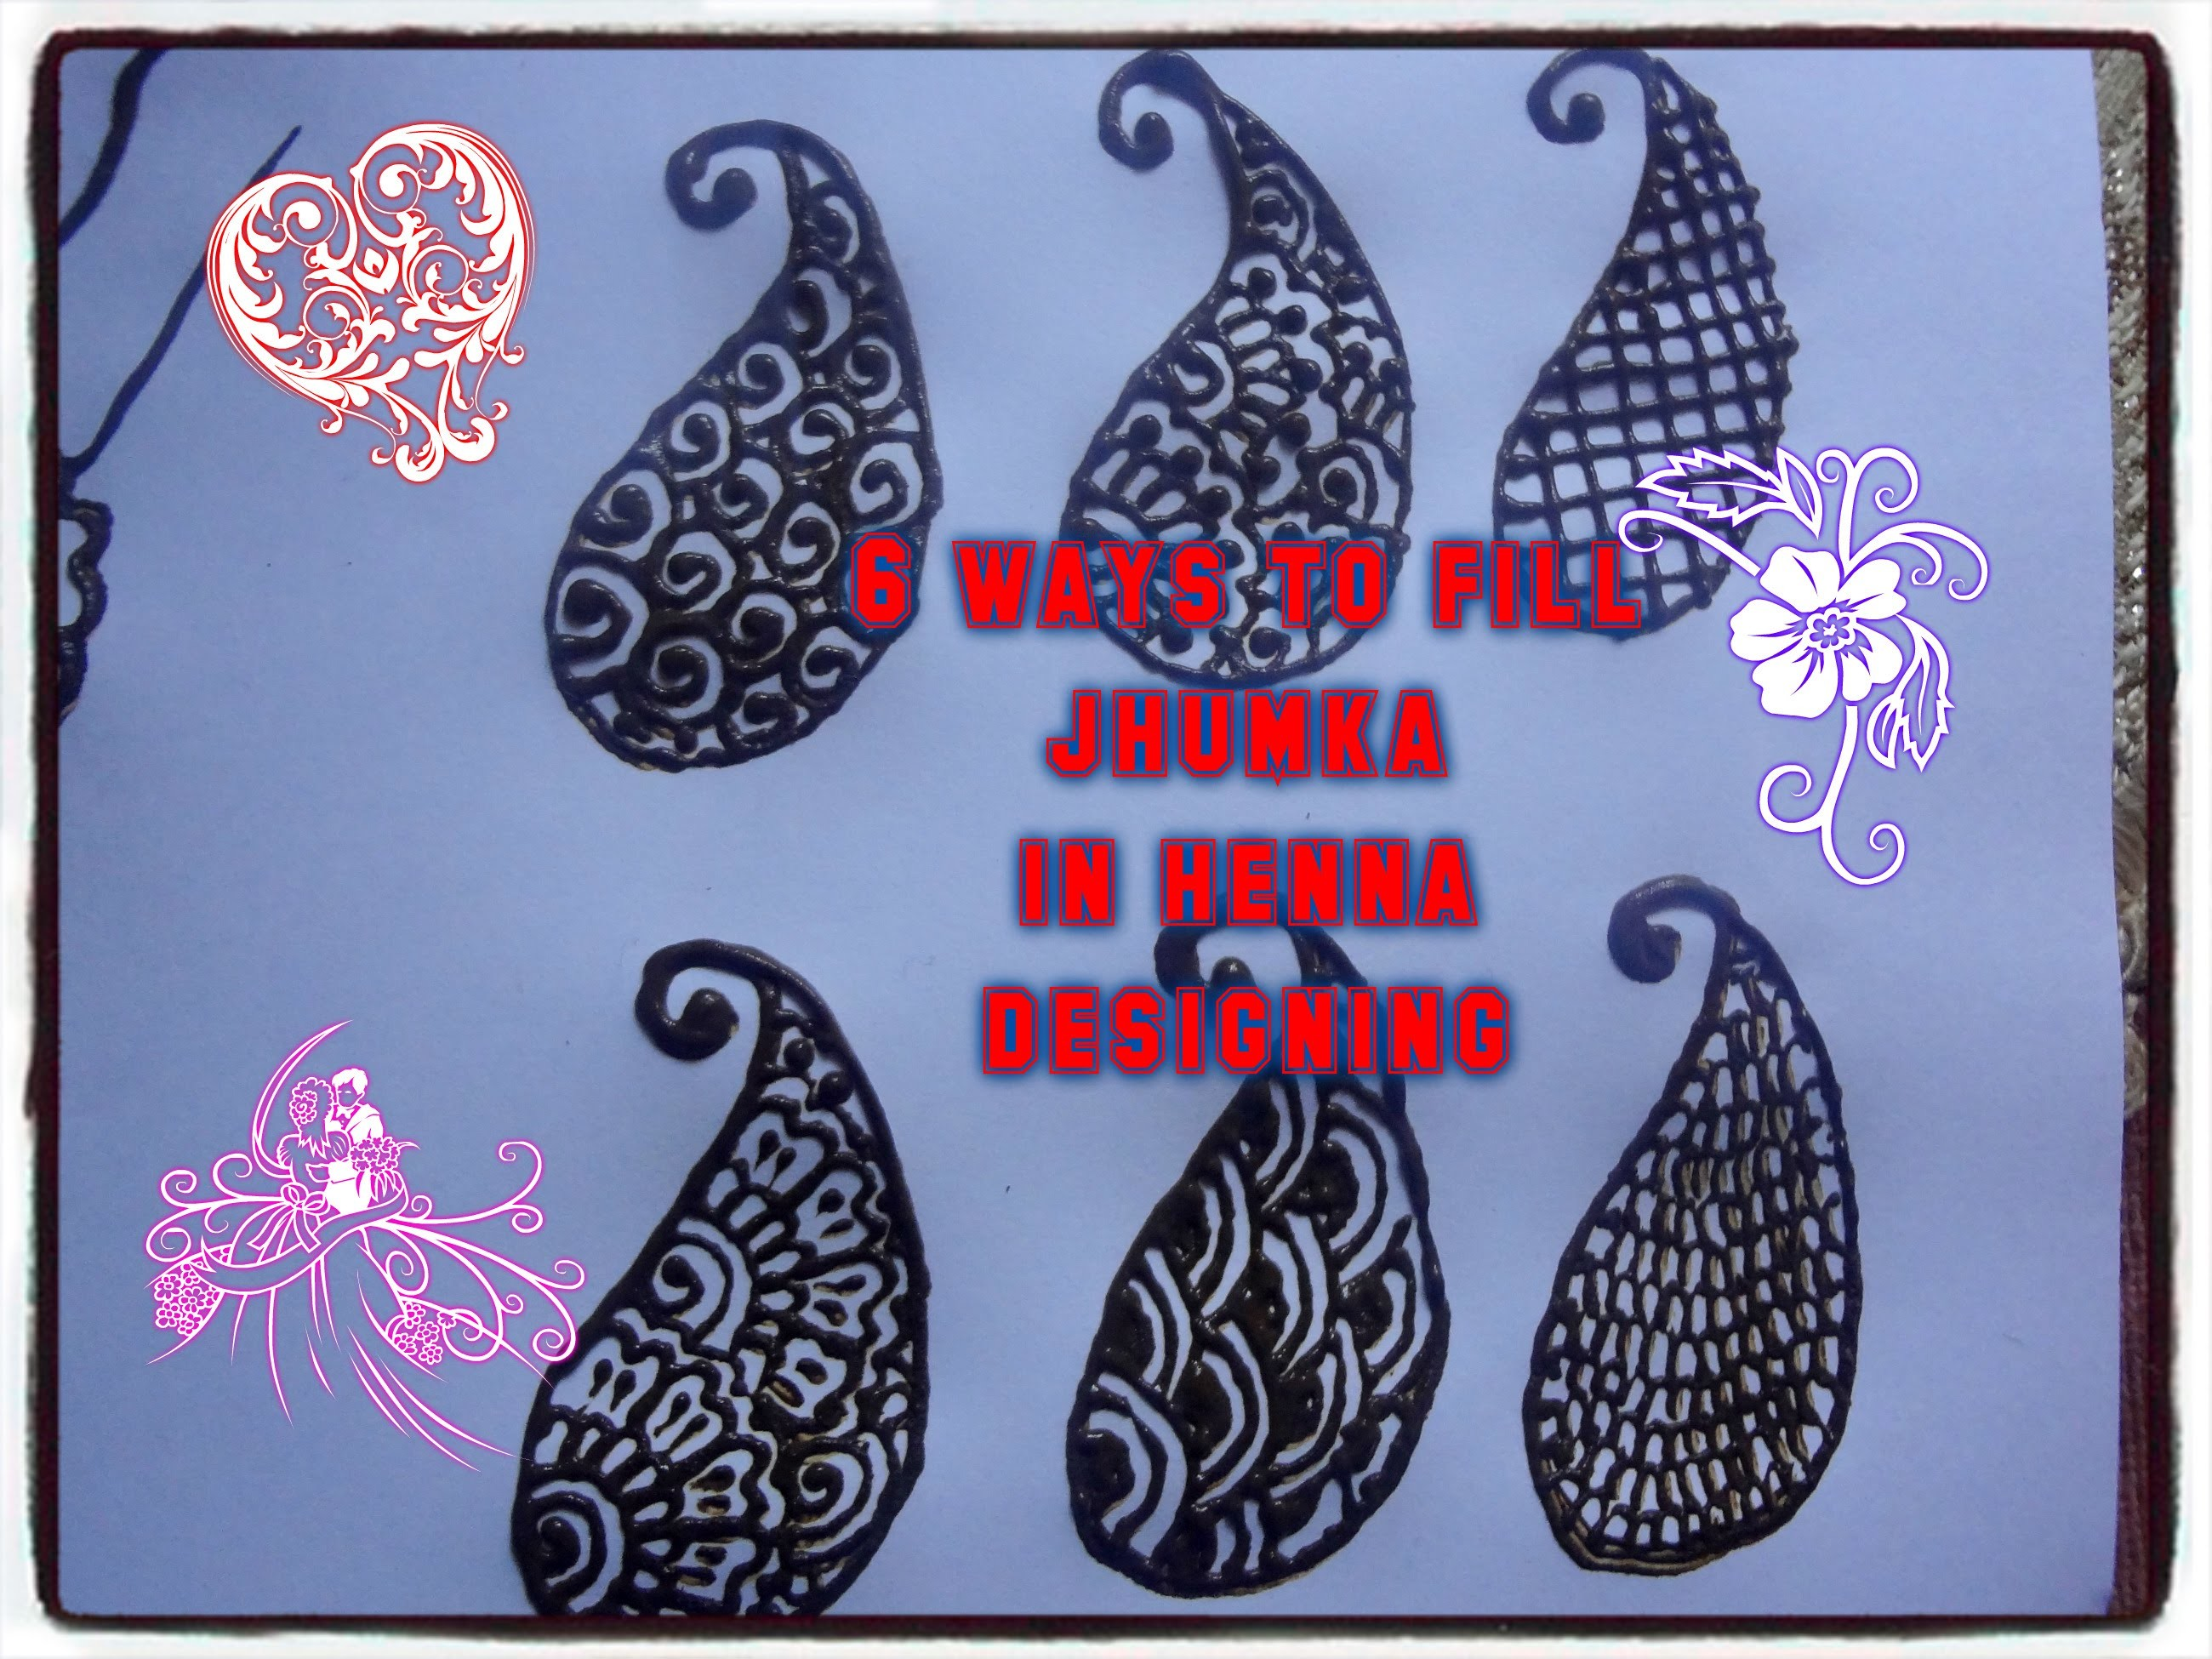 DIY: how to fill paisley or jhumka in henna designing for beginners and professionals